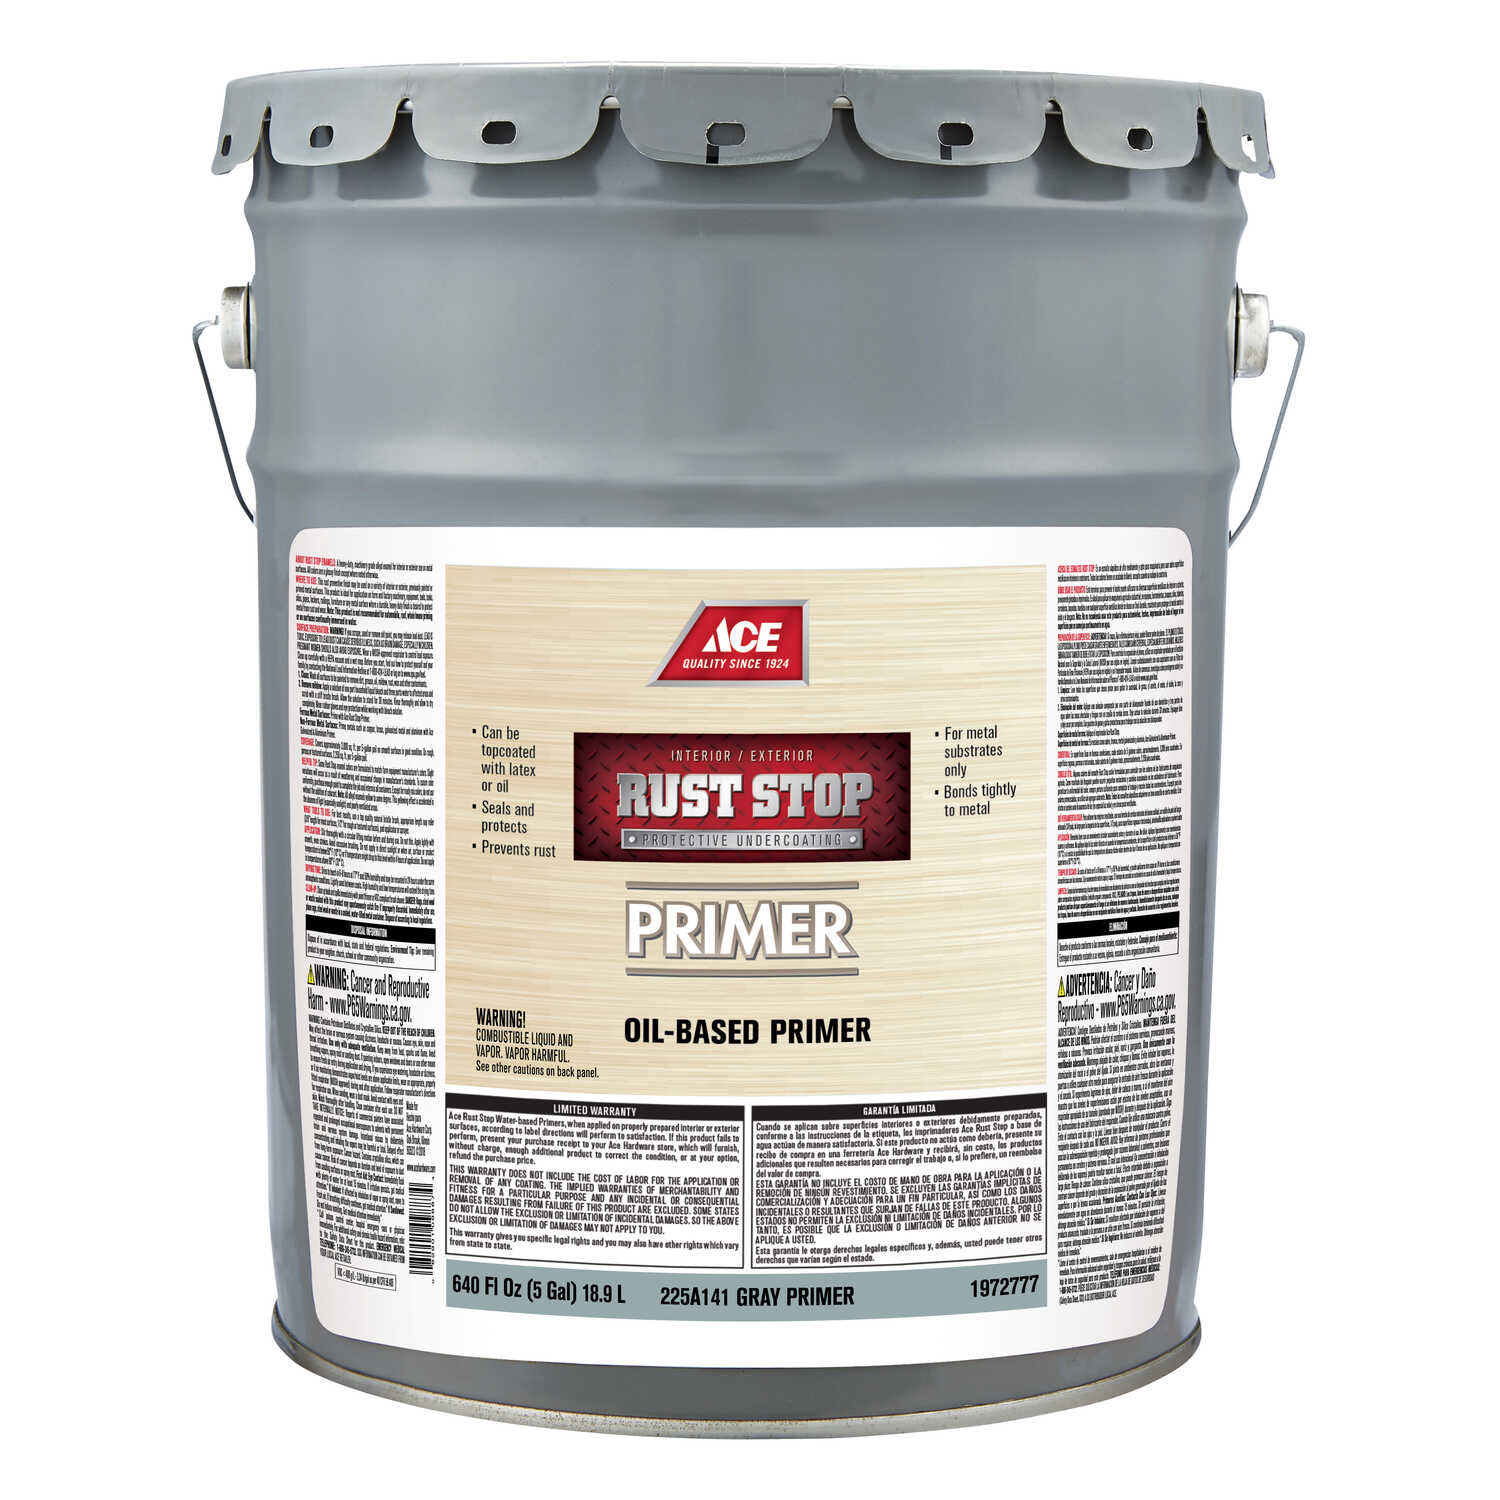 Ace  Rust Stop  Flat  Grey  Alkyd Resin  Oil Primer  For Clean Metals 5 gal.